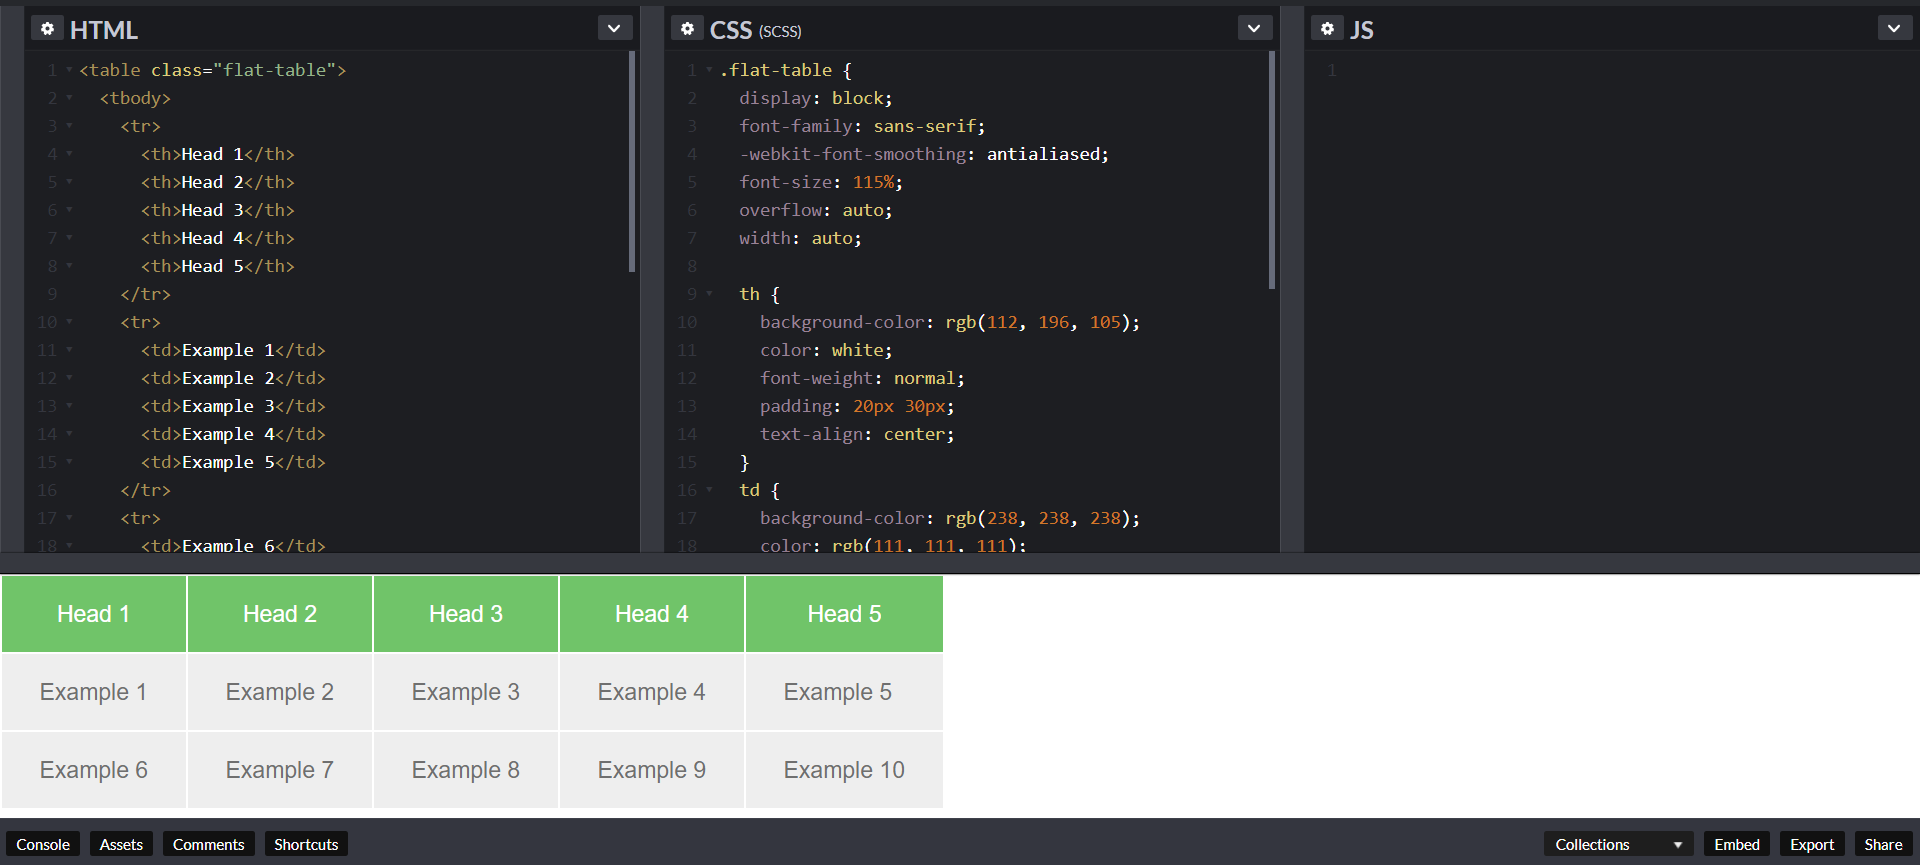 Want To Learn How To Code? Get Our HTML & CSS Step-By-Step Guide Today »